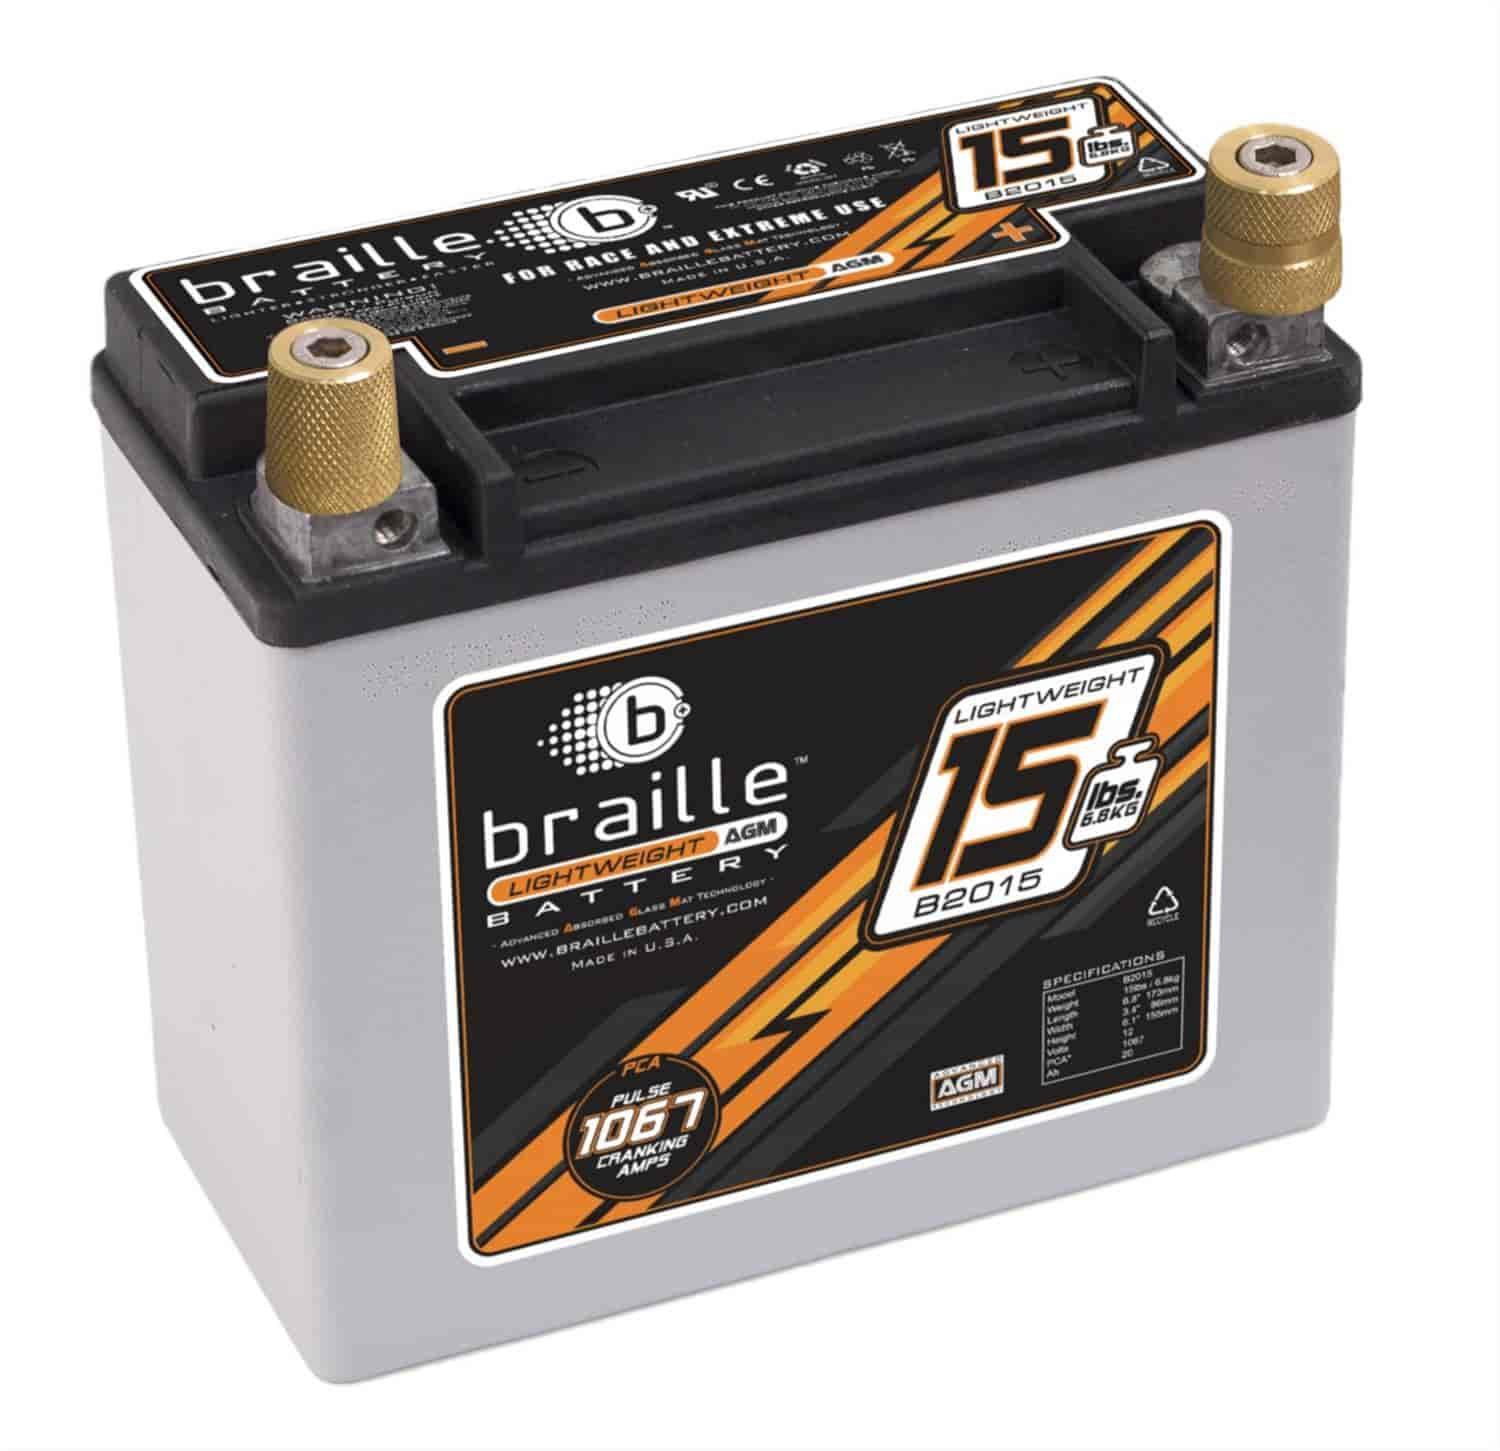 Braille Battery B2015